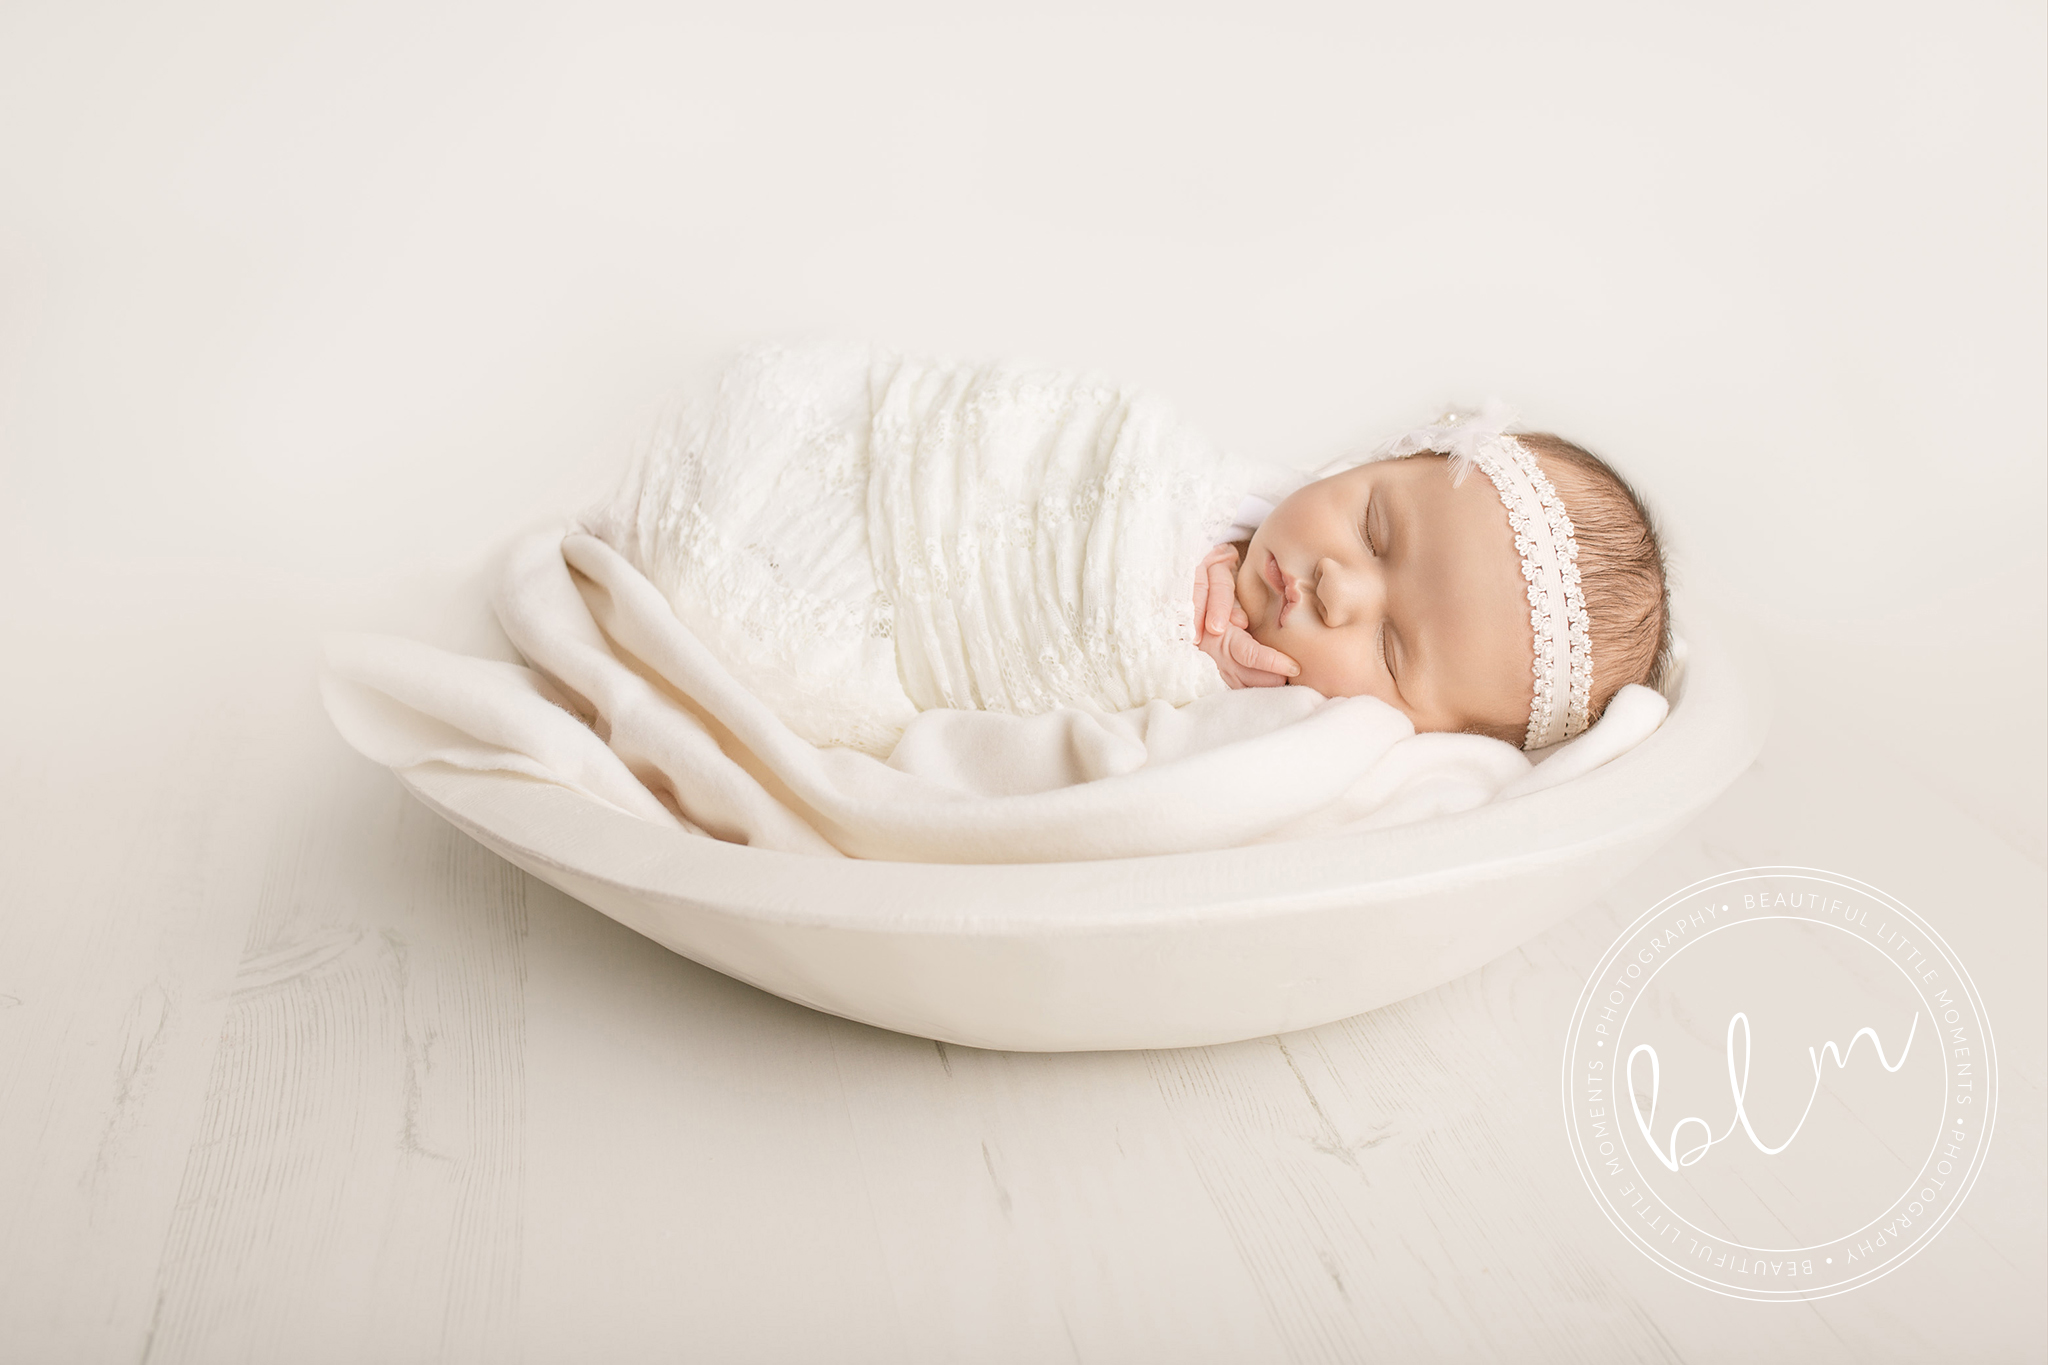 newborn-baby-photo-shoot-epsom-surrey-girl-white